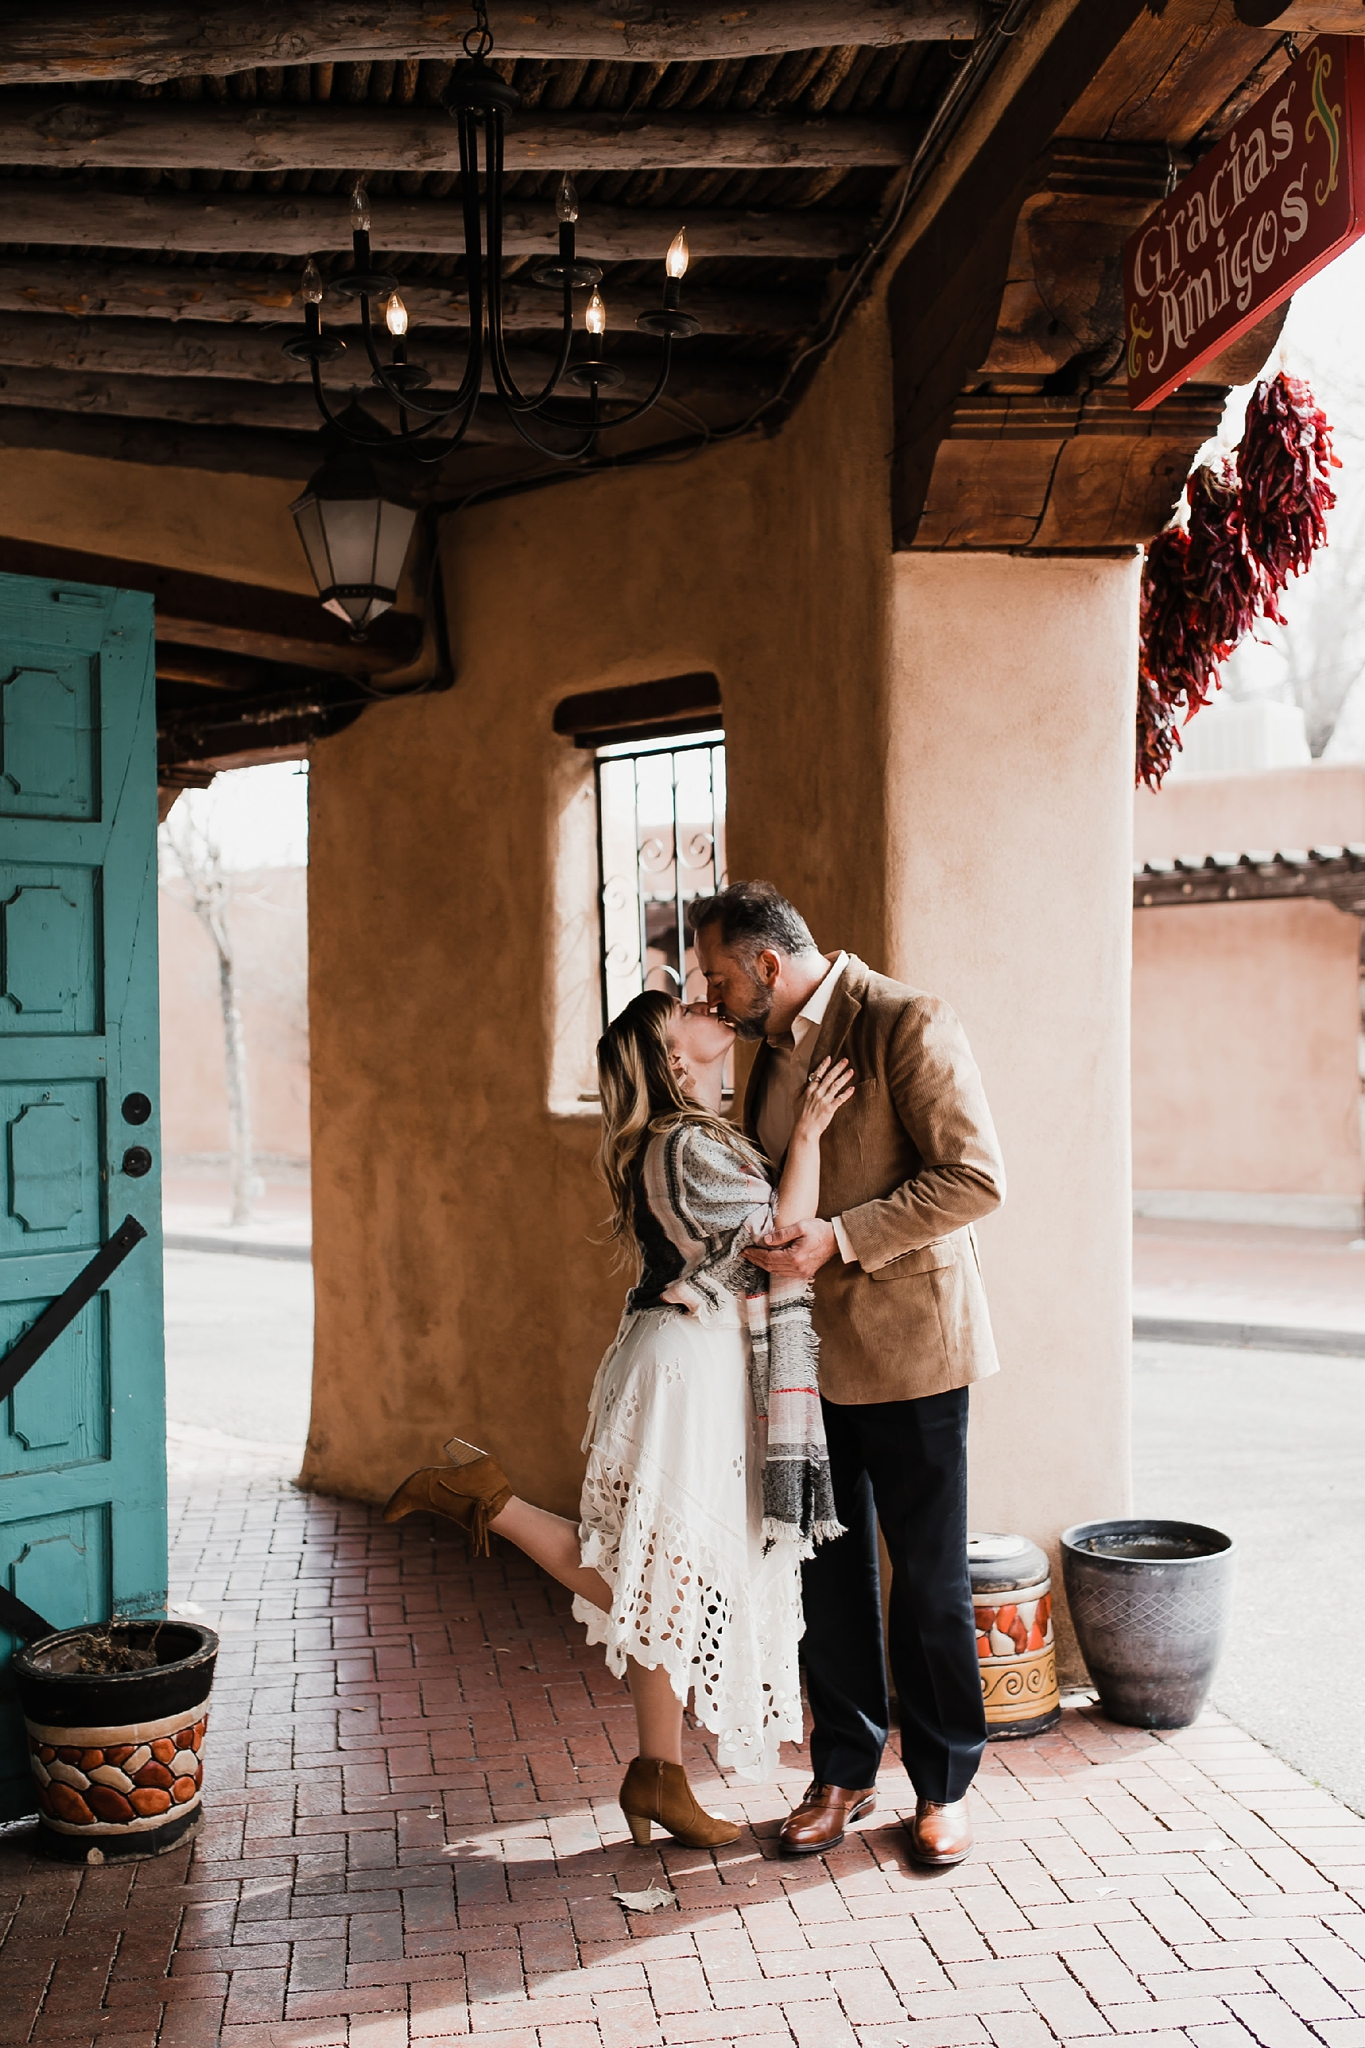 Alicia+lucia+photography+-+albuquerque+wedding+photographer+-+santa+fe+wedding+photography+-+new+mexico+wedding+photographer+-+new+mexico+engagement+-+albuquerque+engagement+-+old+town+engagement_0019.jpg